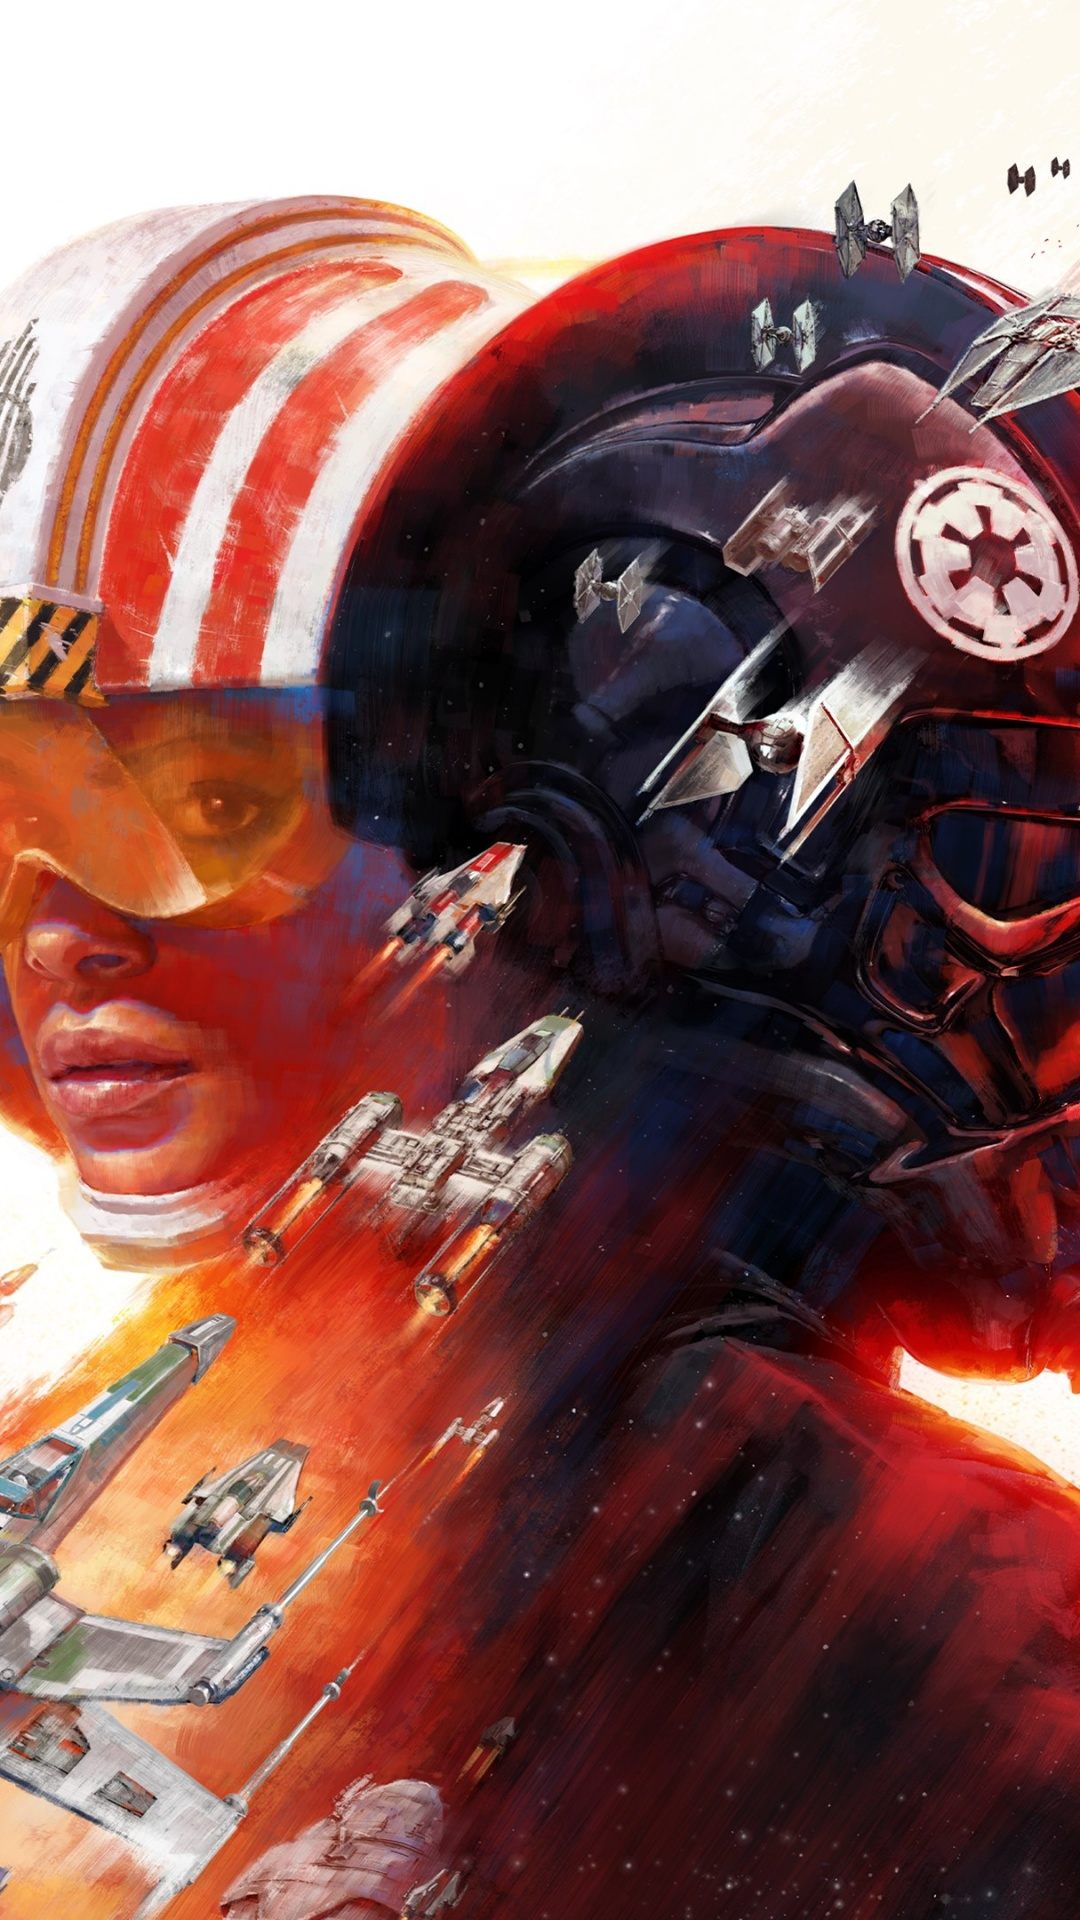 star wars squadrons playstation 4 pc games 2020 games xbox 1080x1920 1883